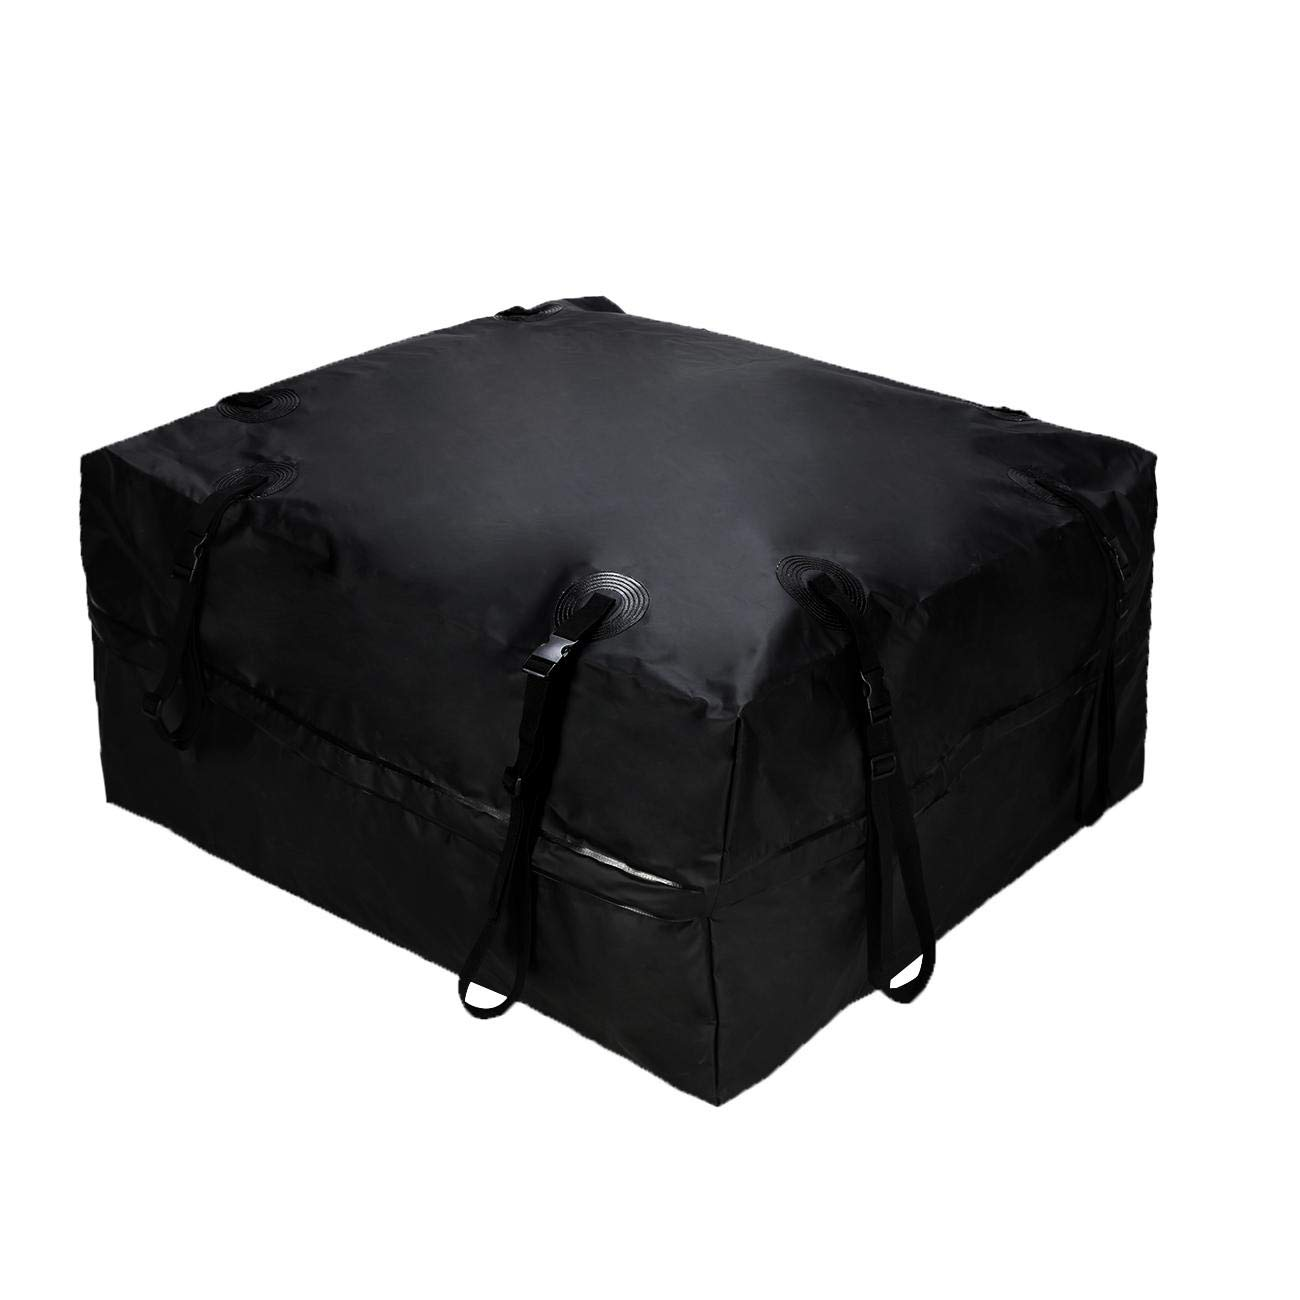 AUXMART Waterproof Rooftop Cargo Bag (15 cu. ft.) - Roof Top Soft Luggage Carrier for SUV/Van/Car (Straps to Roof Rack Crossbars or a Roof Basket)